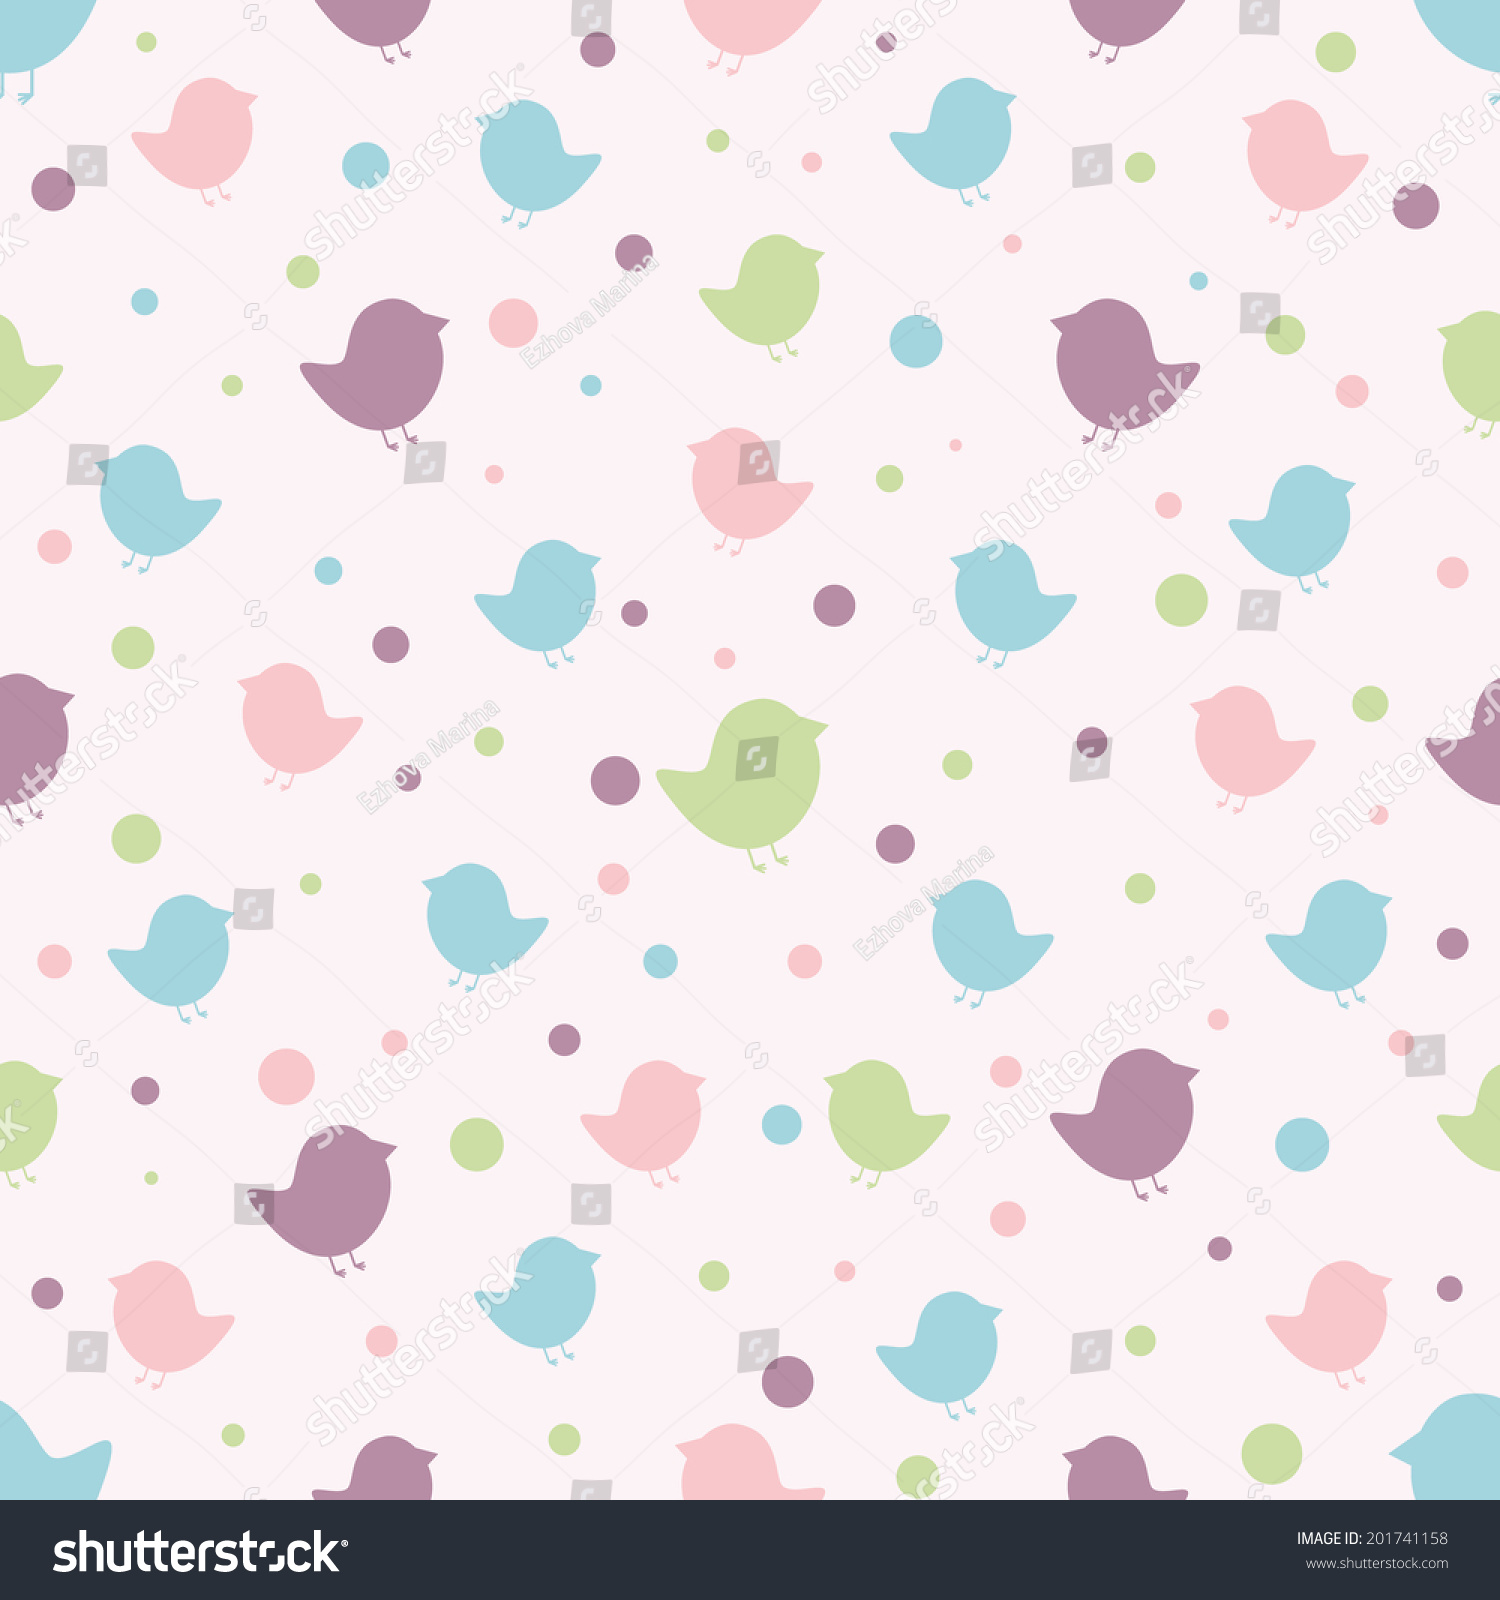 Scrapbook paper clouds - Seamless Pattern Baby Background With Silhouettes Birds And Circles Paper For Scrapbook Or Background